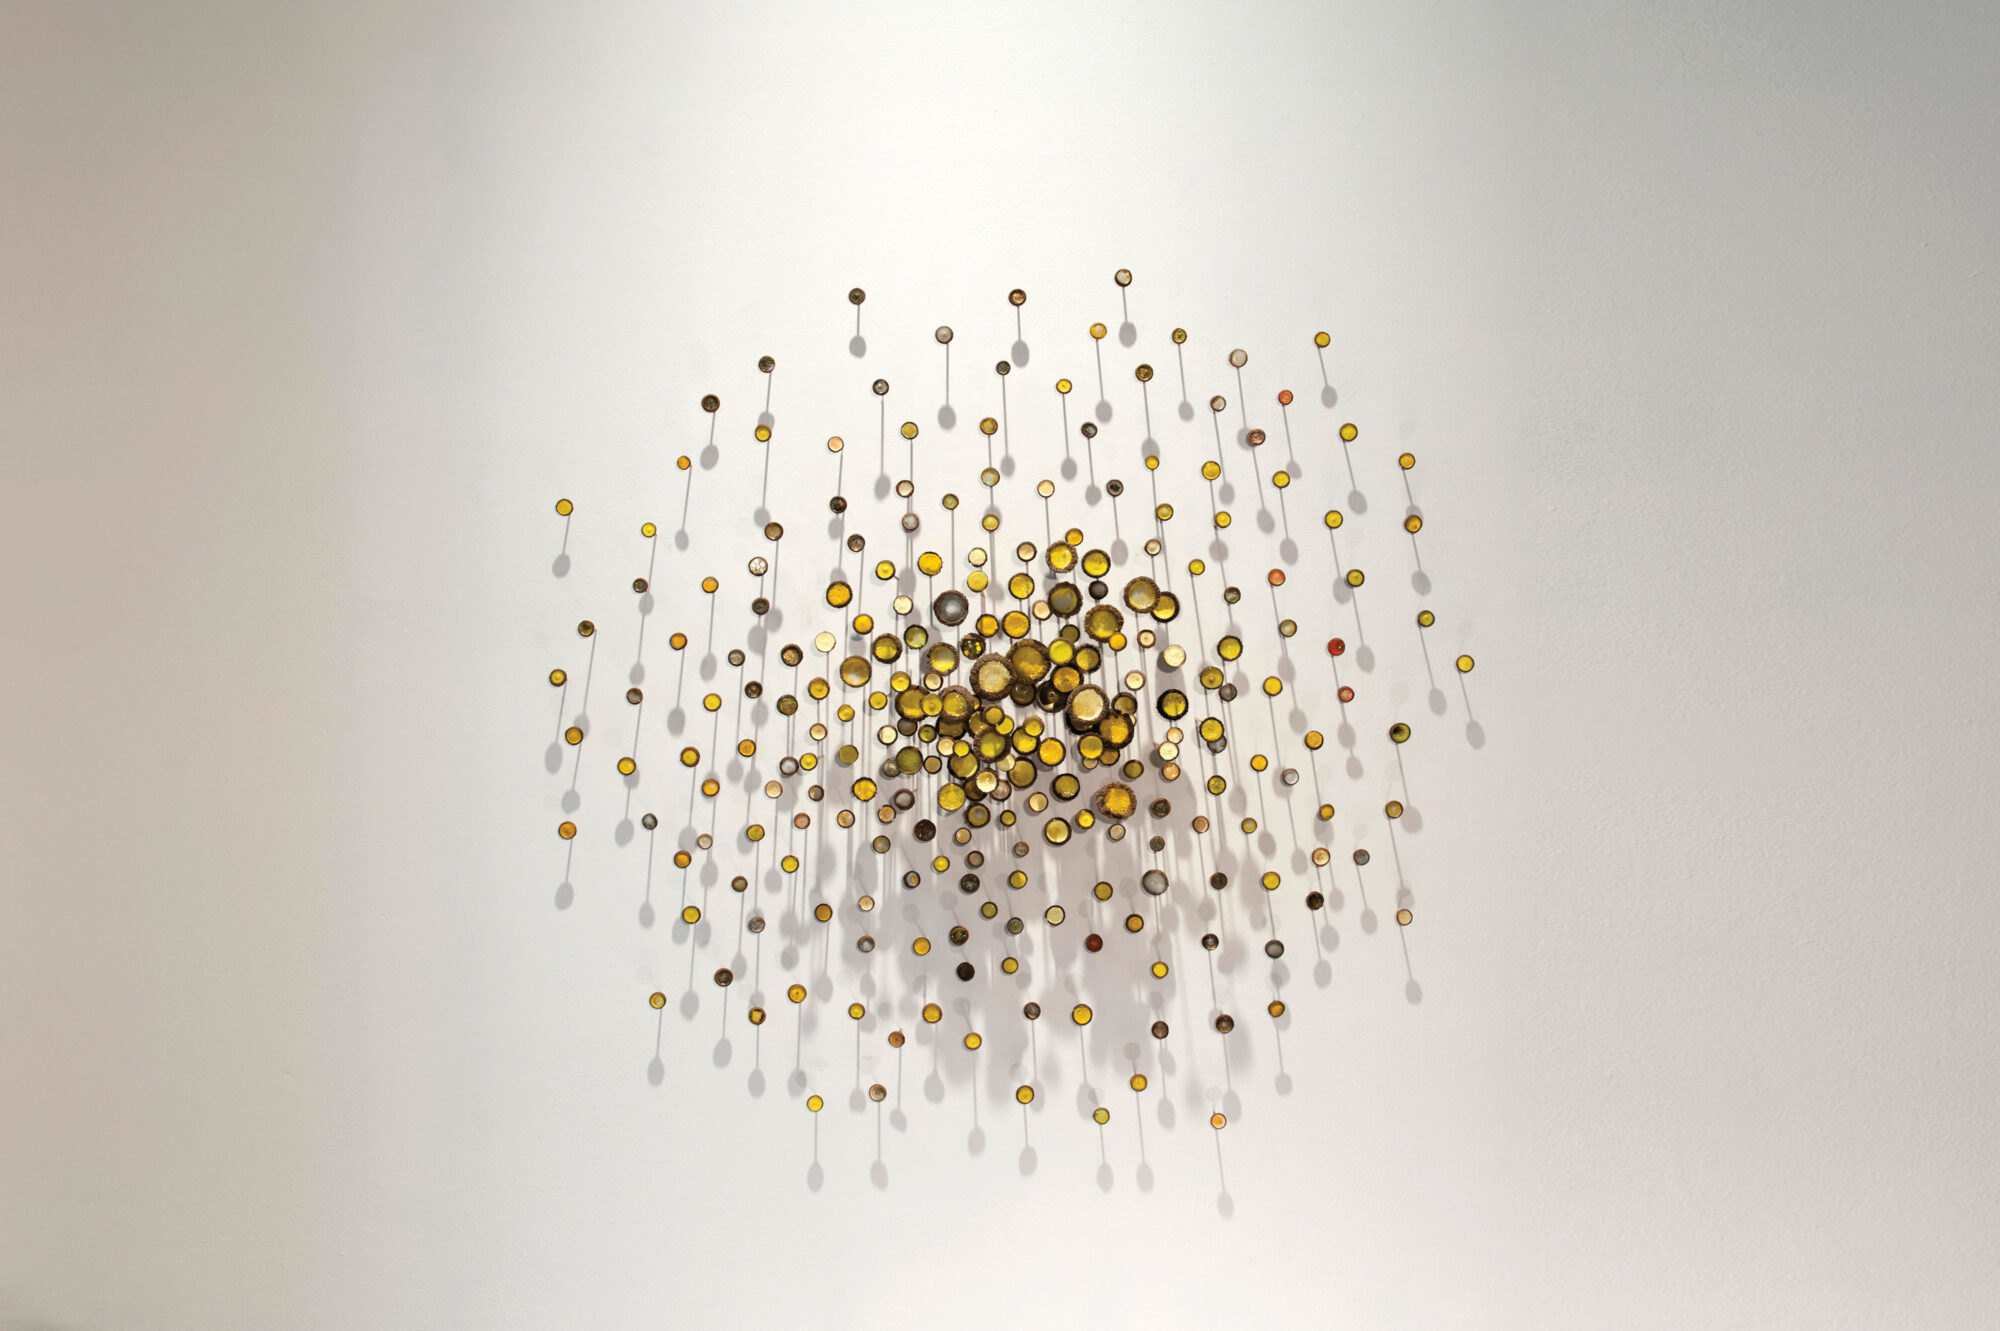 wall installation of circular objects